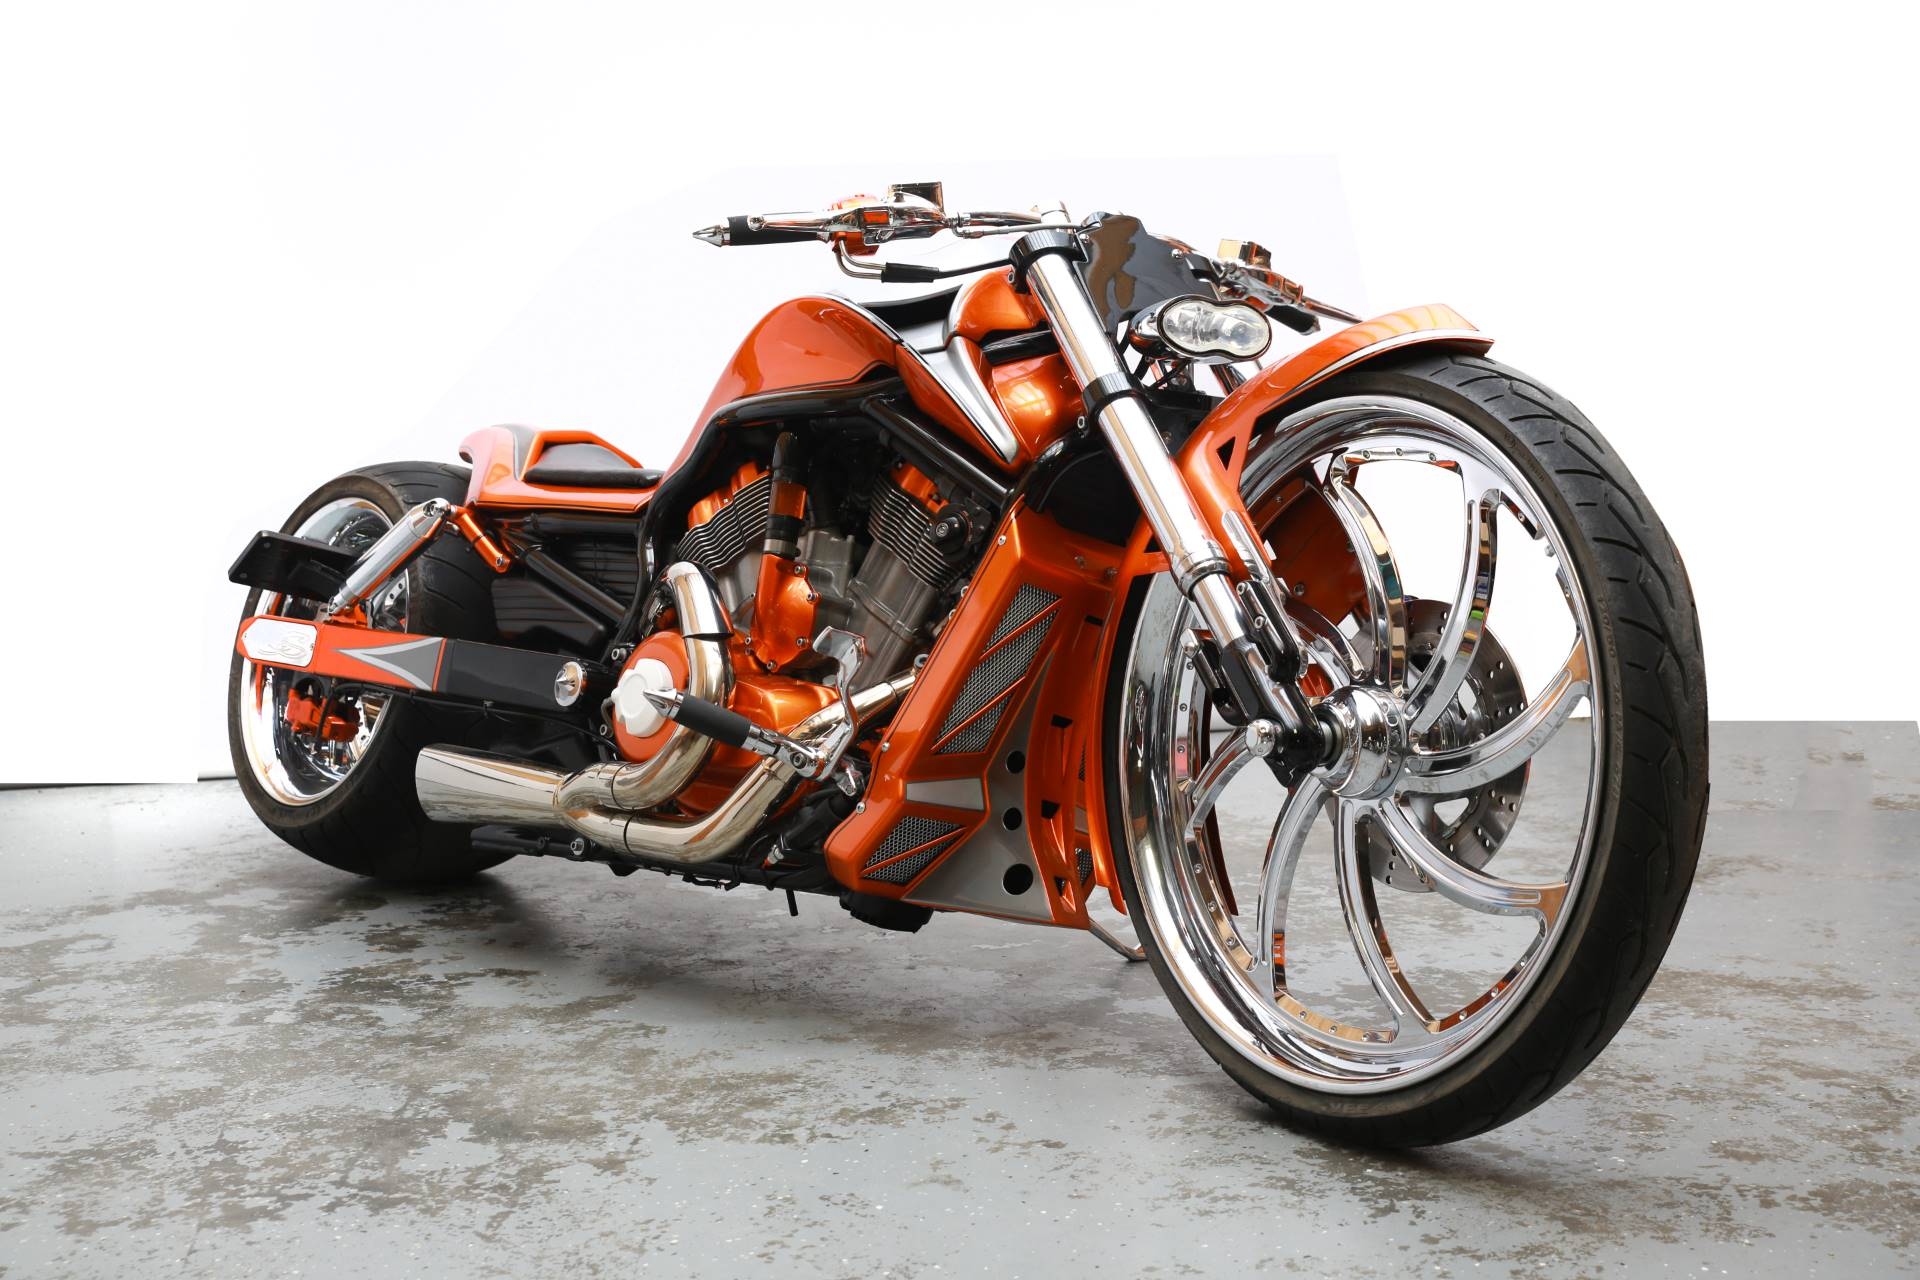 2013 Harley Davidson V-ROD MUSCLE in Lexington, North Carolina - Photo 3